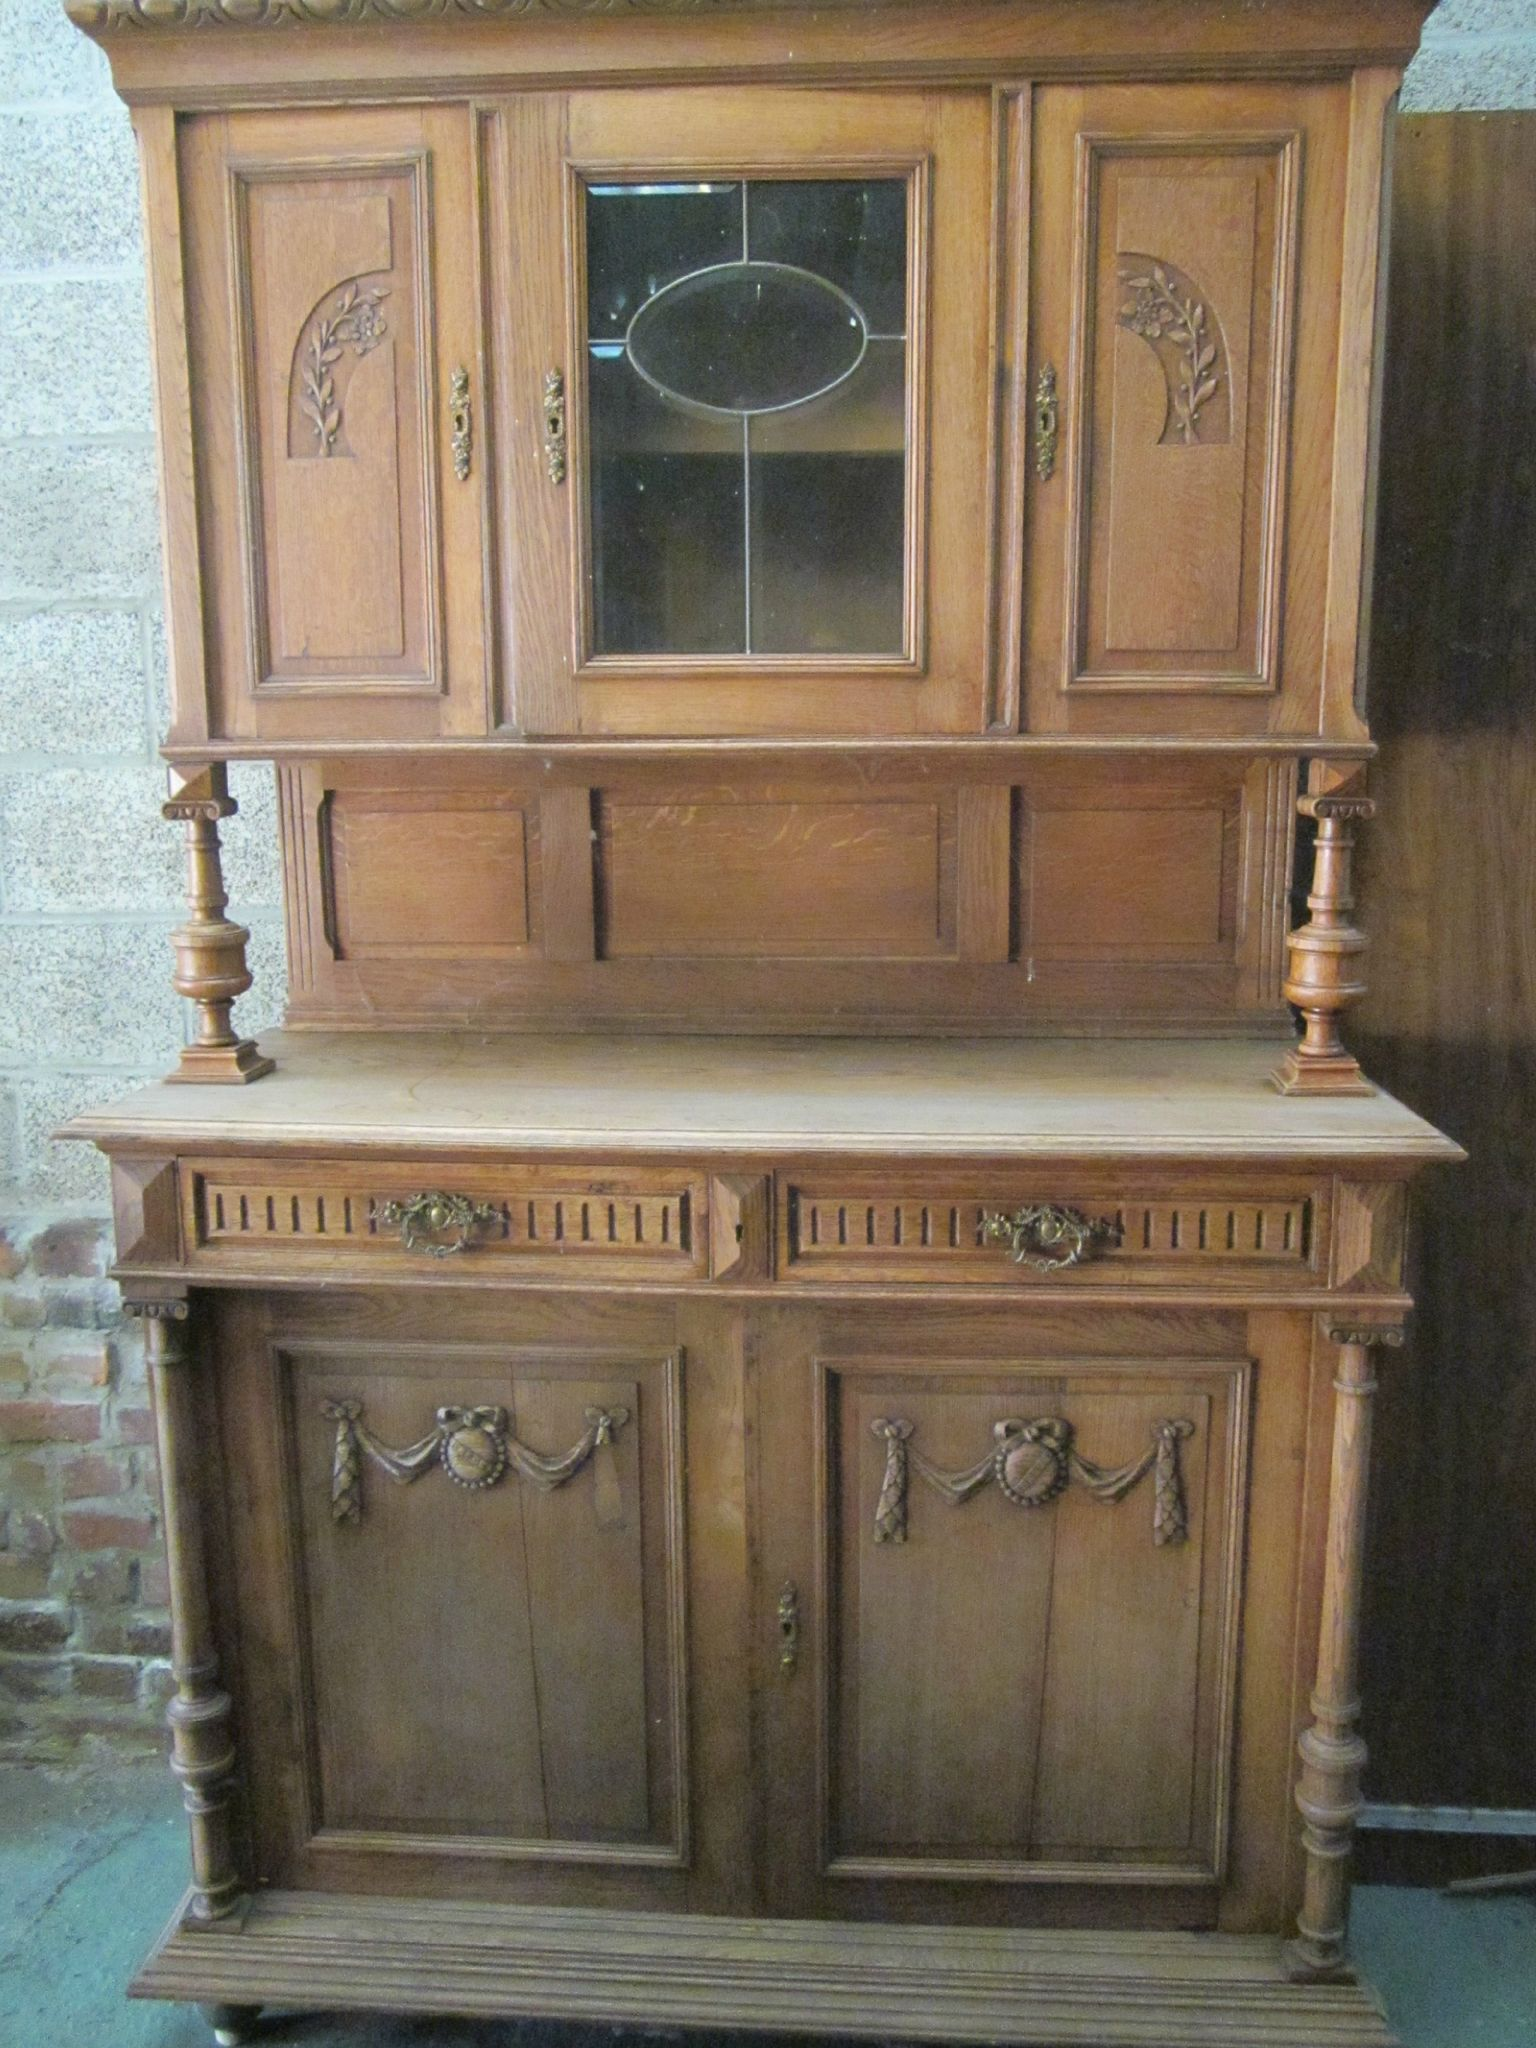 Buffet henri 2 photo de trouvailles relooker ma bulle for Meuble henri 2 relooke